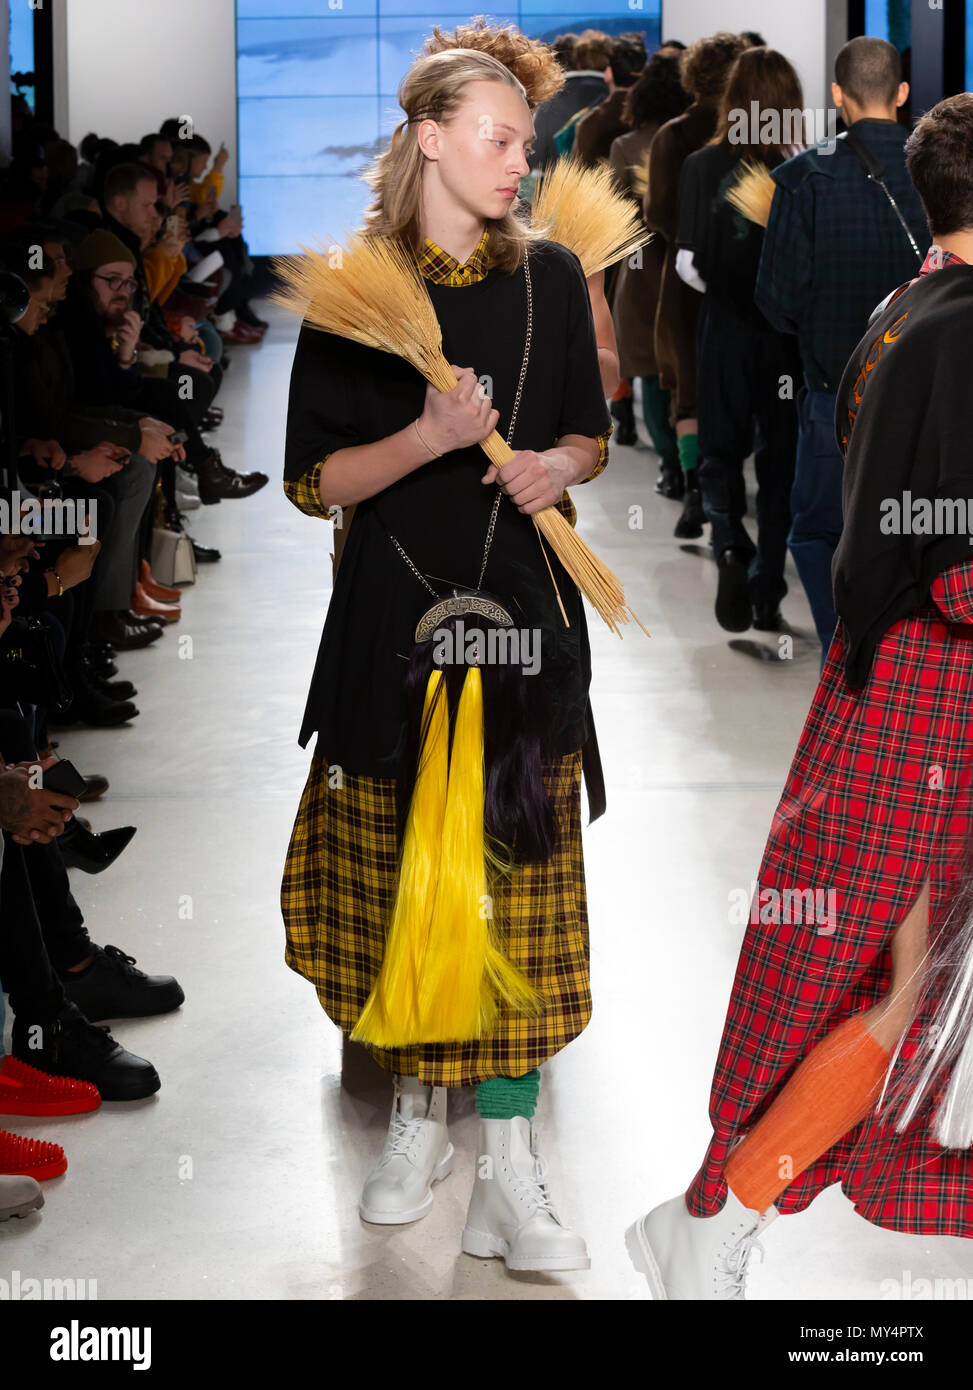 NEW YORK, NY - Feb 07, 2018: Models walk the runway at the N-p-Elliott SummersEnd  Show during New York Fashion Week Men's F/W 2018 - Stock Image